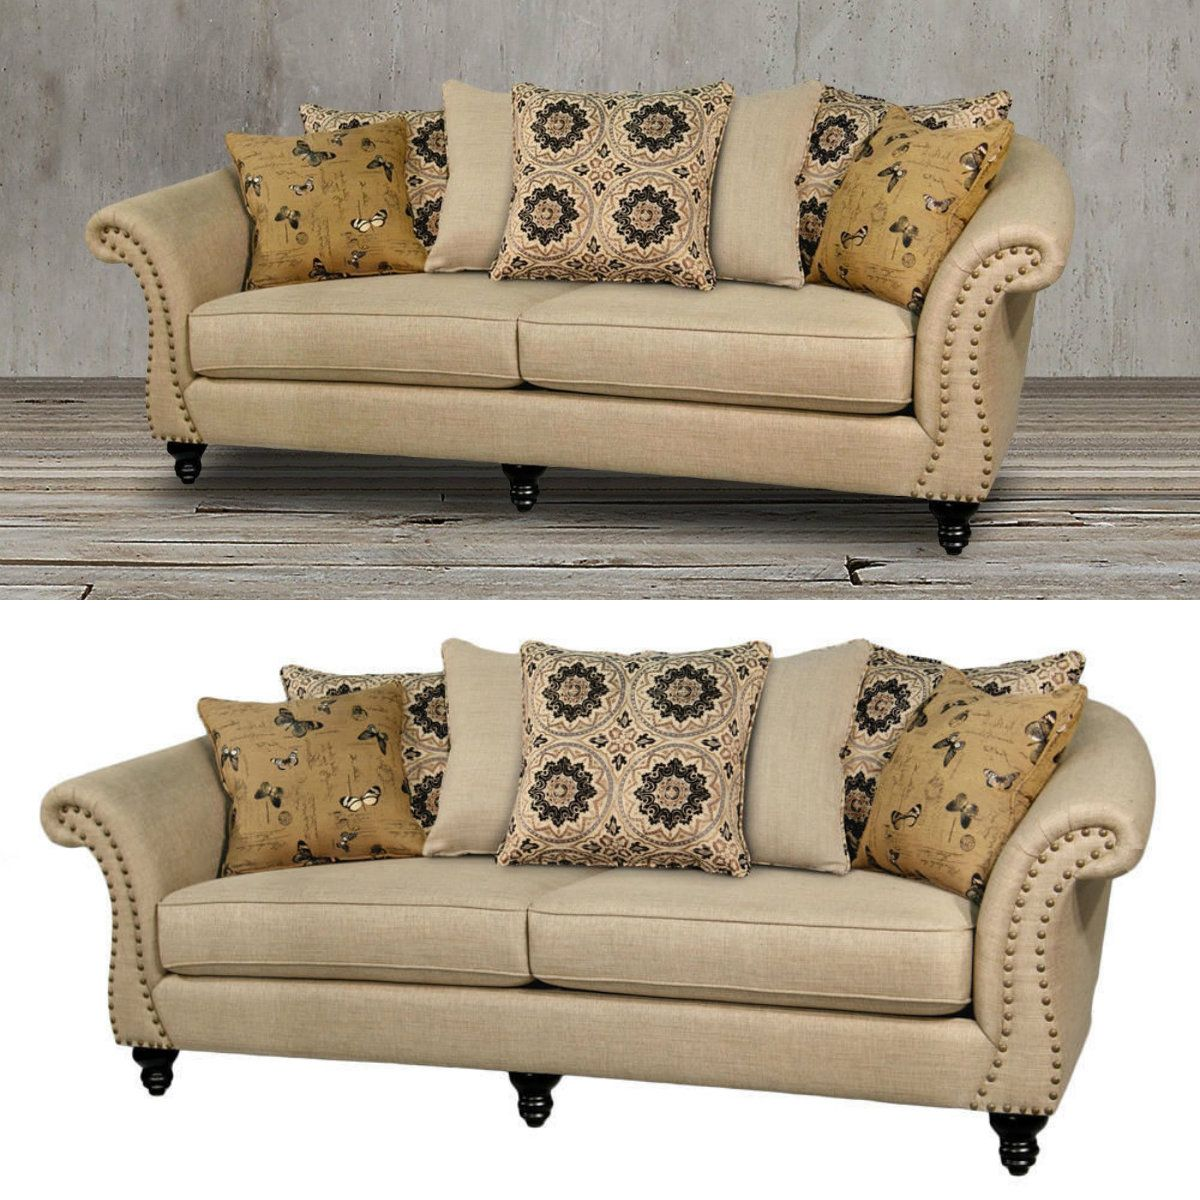 This Striking Beige Sofa Couch Features Contoured Flair Arms Nail